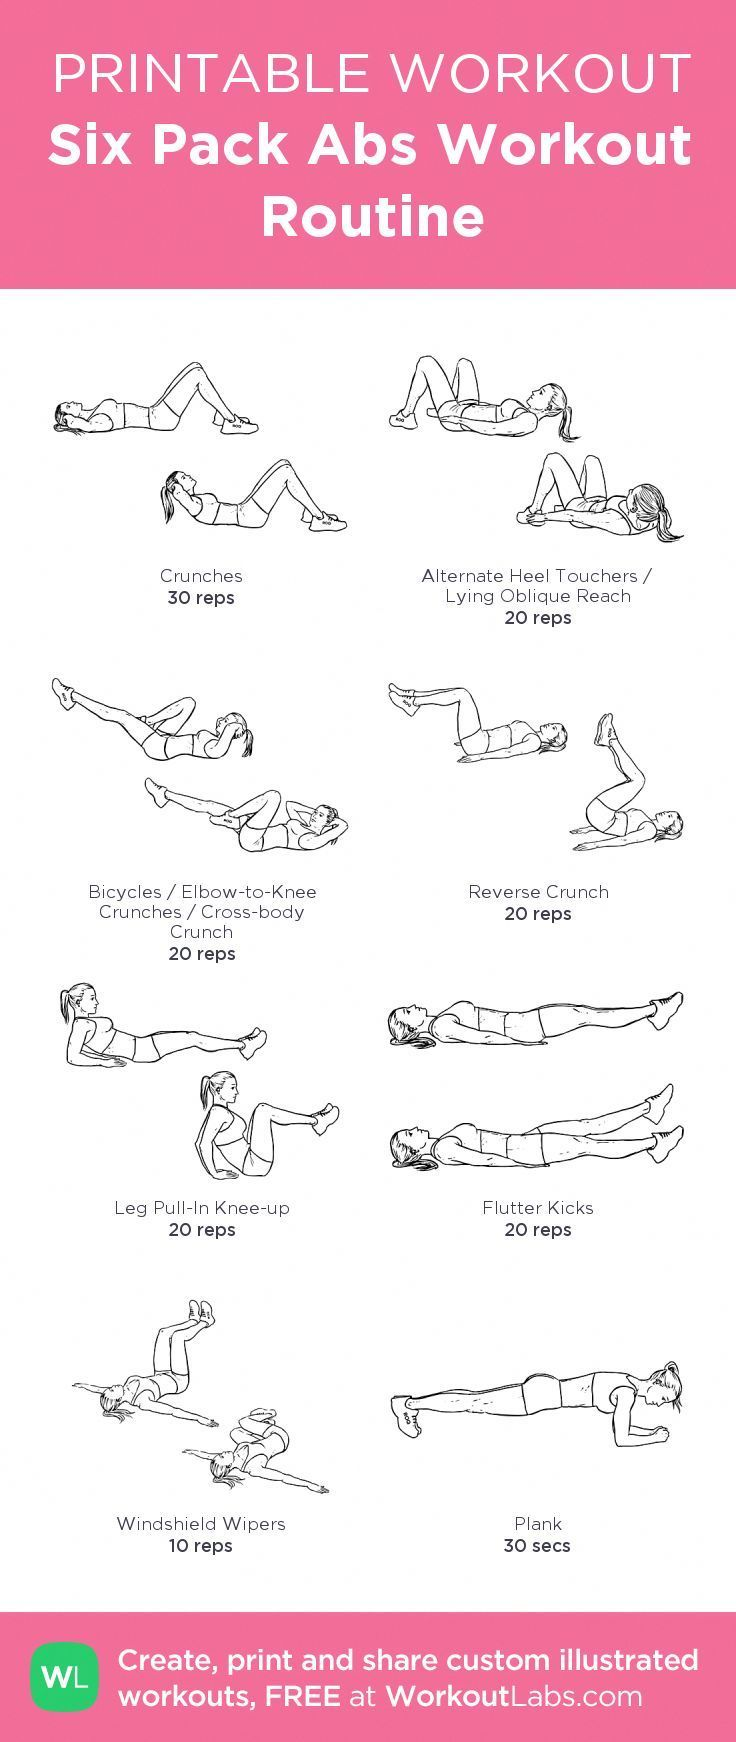 Six Pack Abs Workout Routine: my visual workout created at WorkoutLabs.com • C...   - Fitness - #ABS...